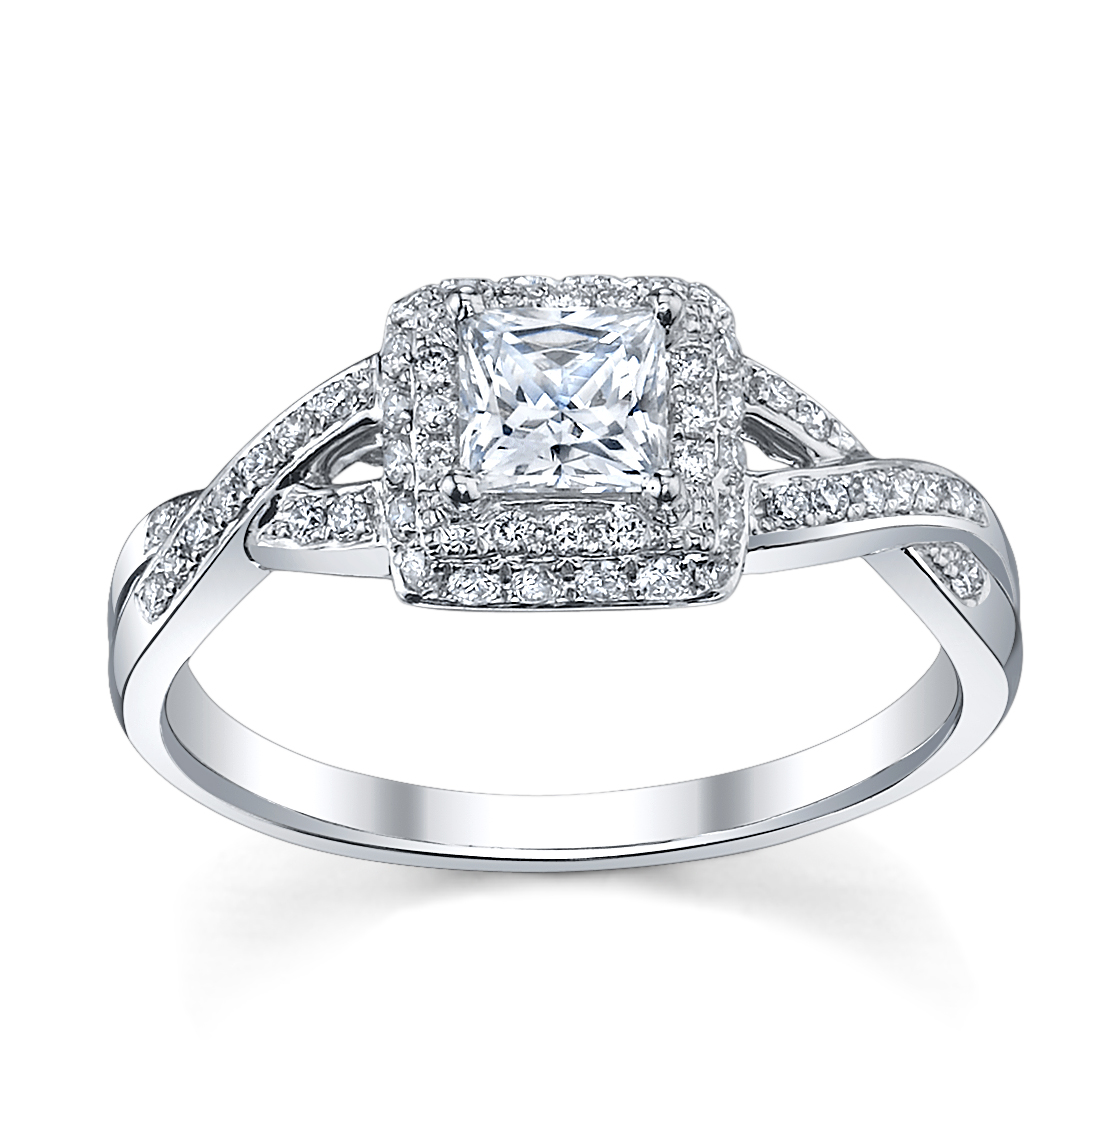 princess cut diamond wedding rings 6 princess cut engagement rings she ll robbins 6802